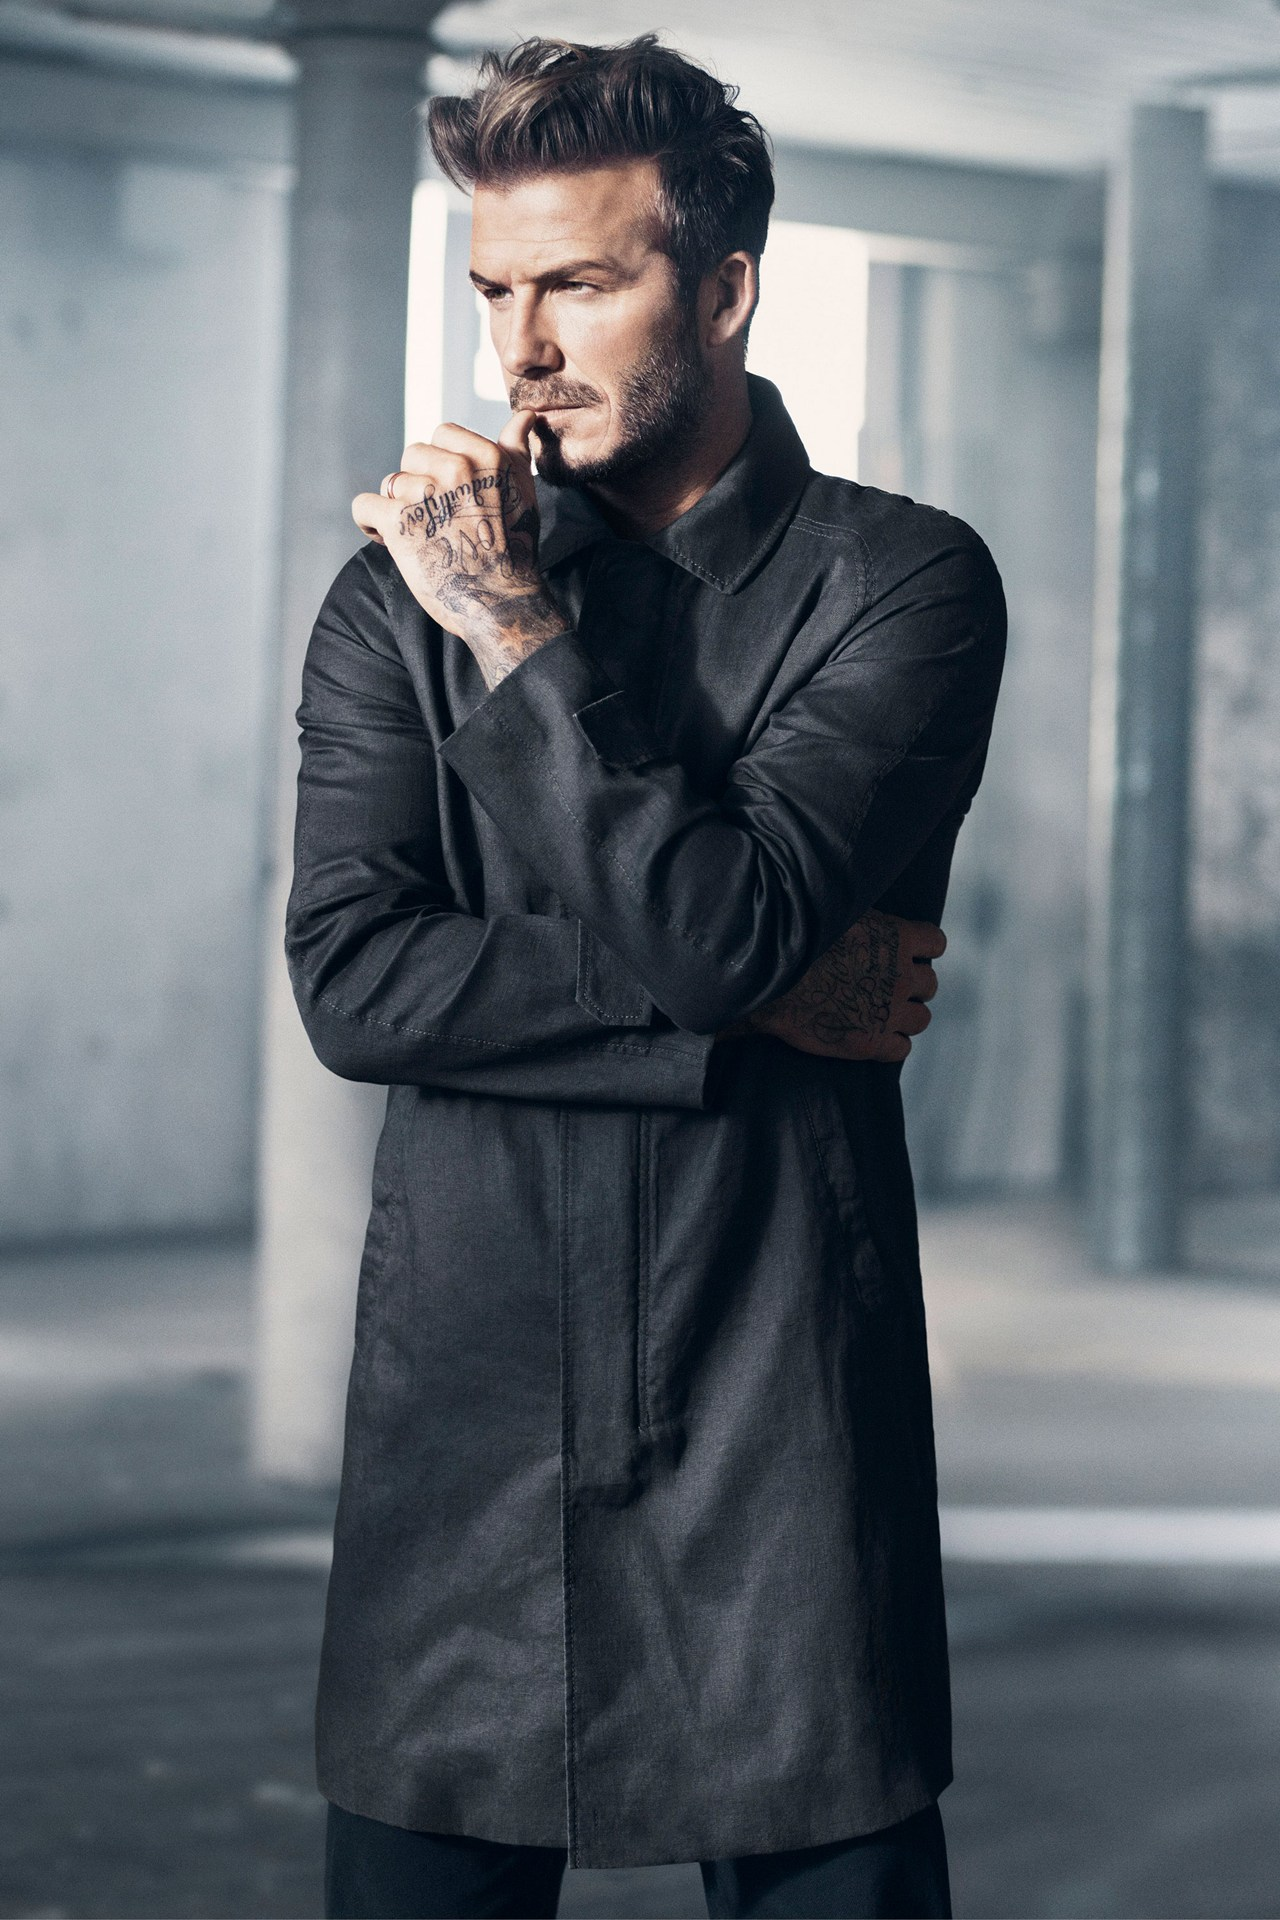 David-Beckham-HM 6-Vogue 20Jan15 pr_b_1280x1920